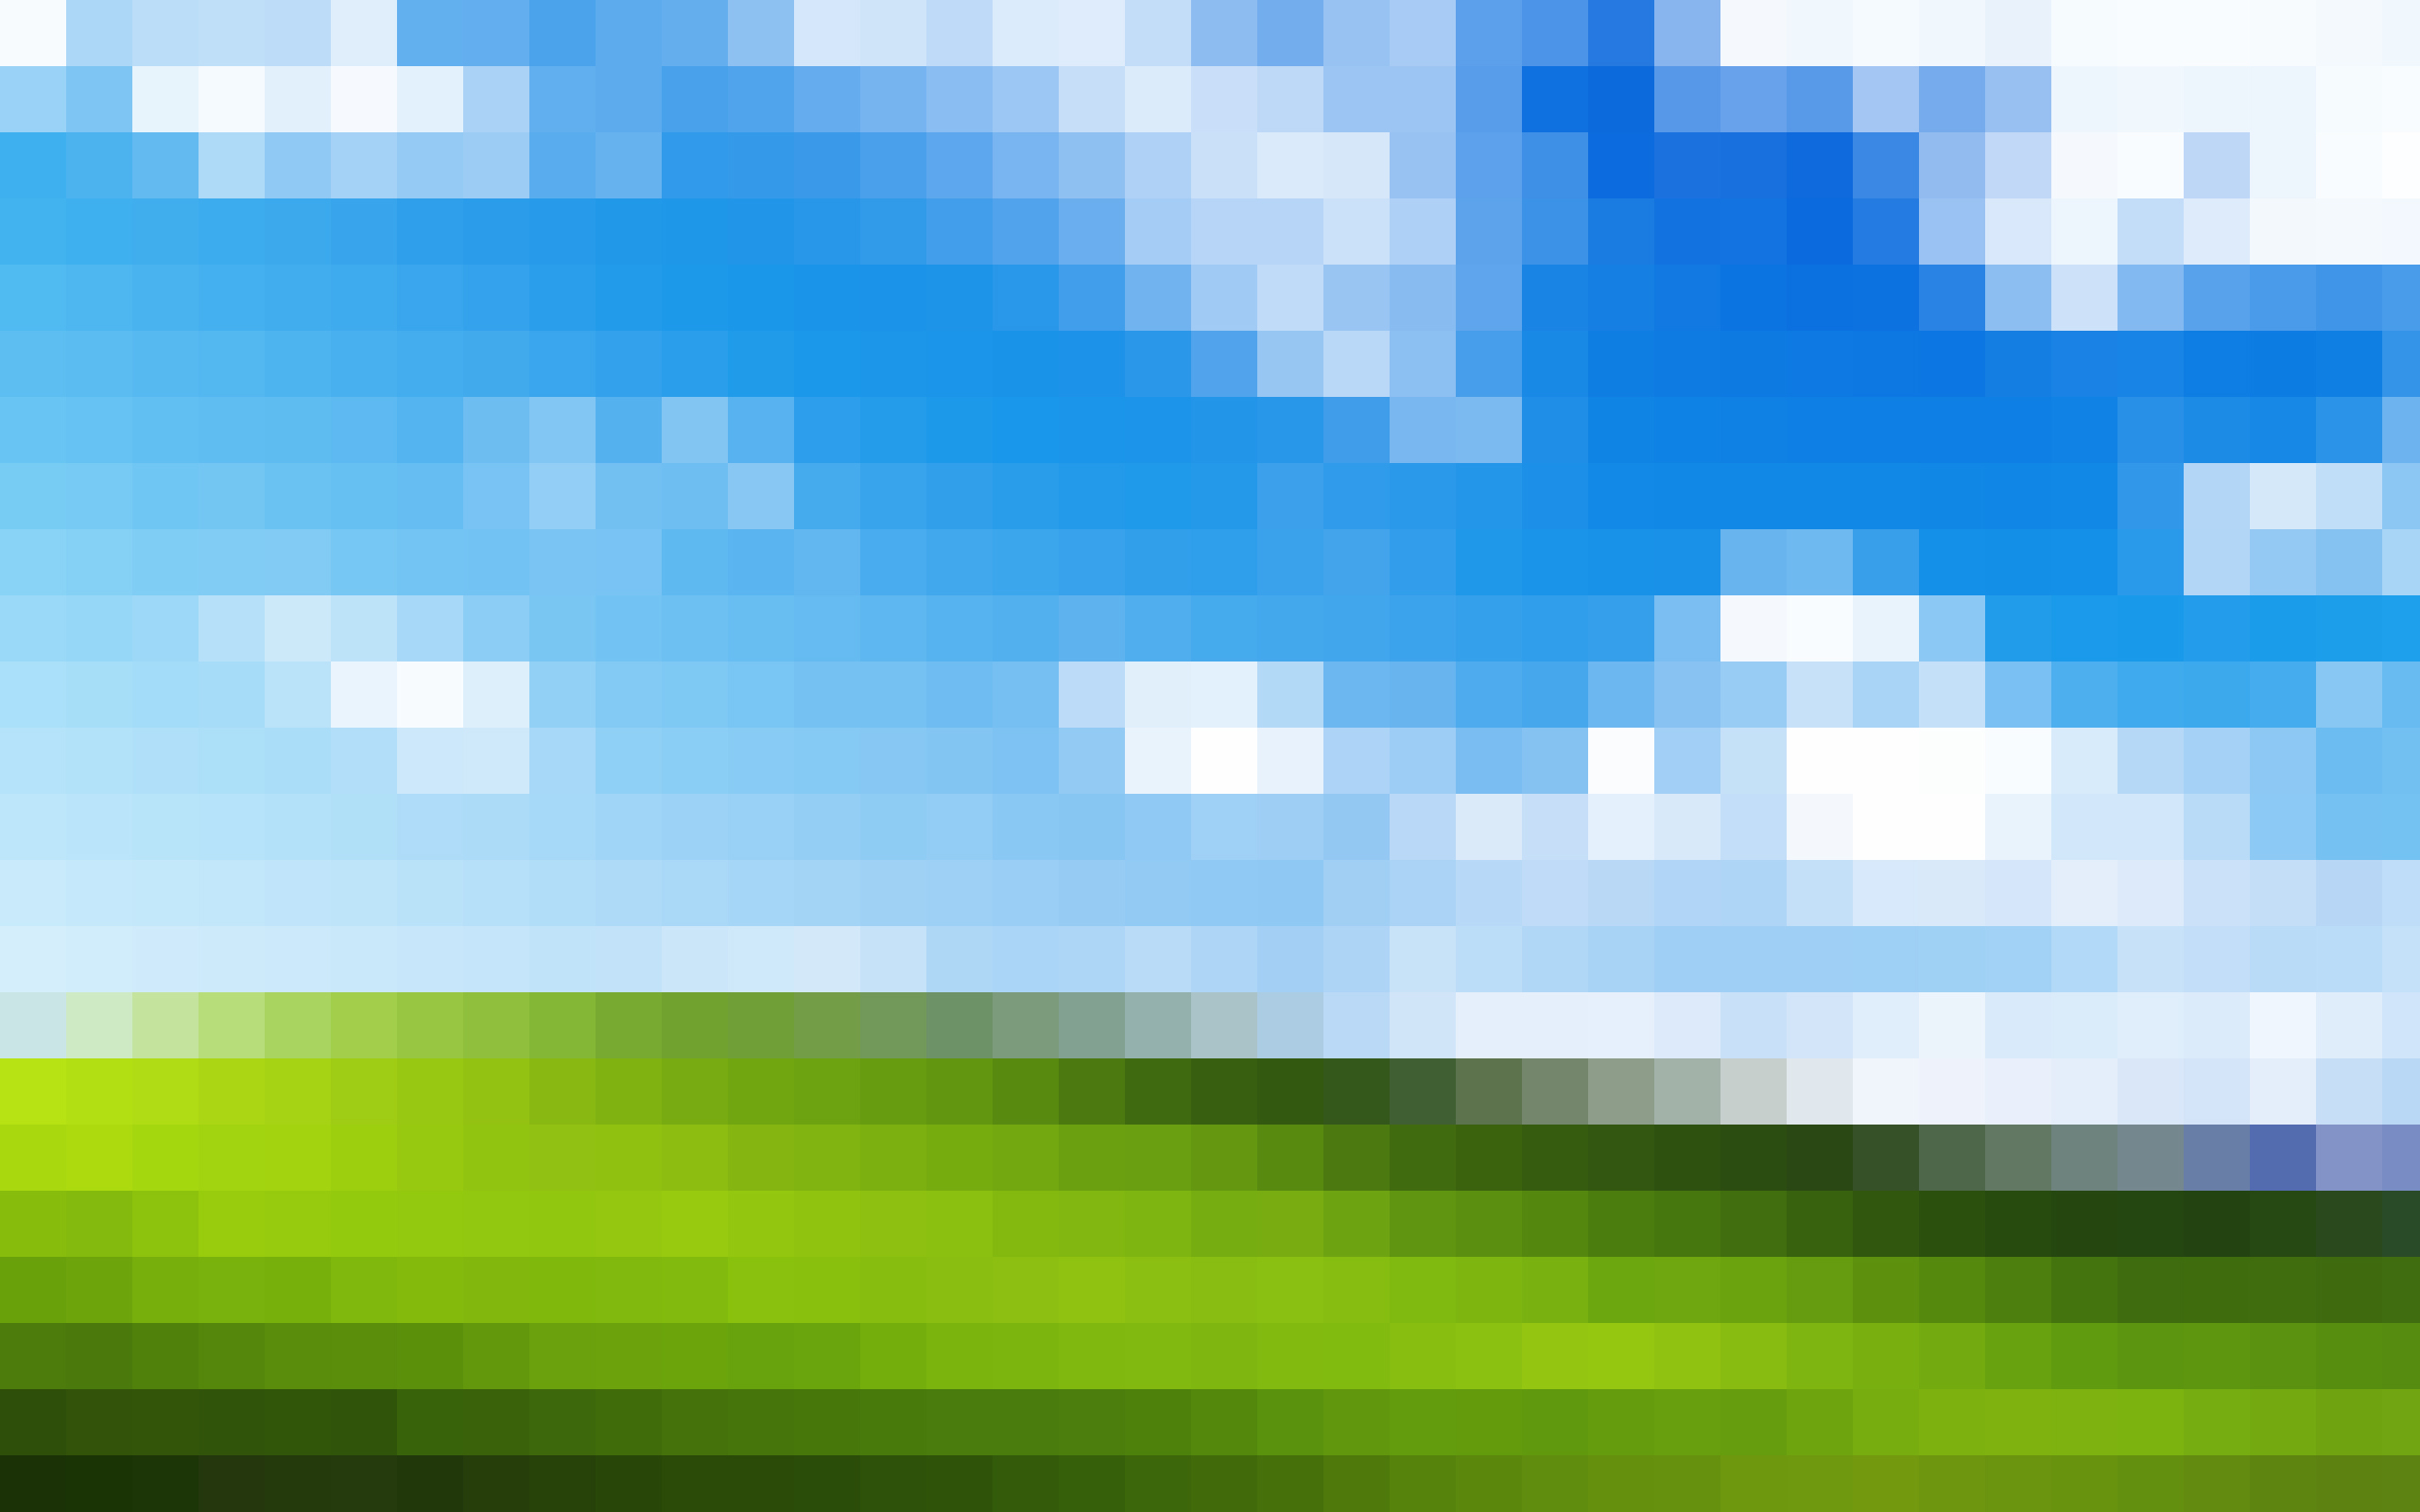 windows xp Pixels